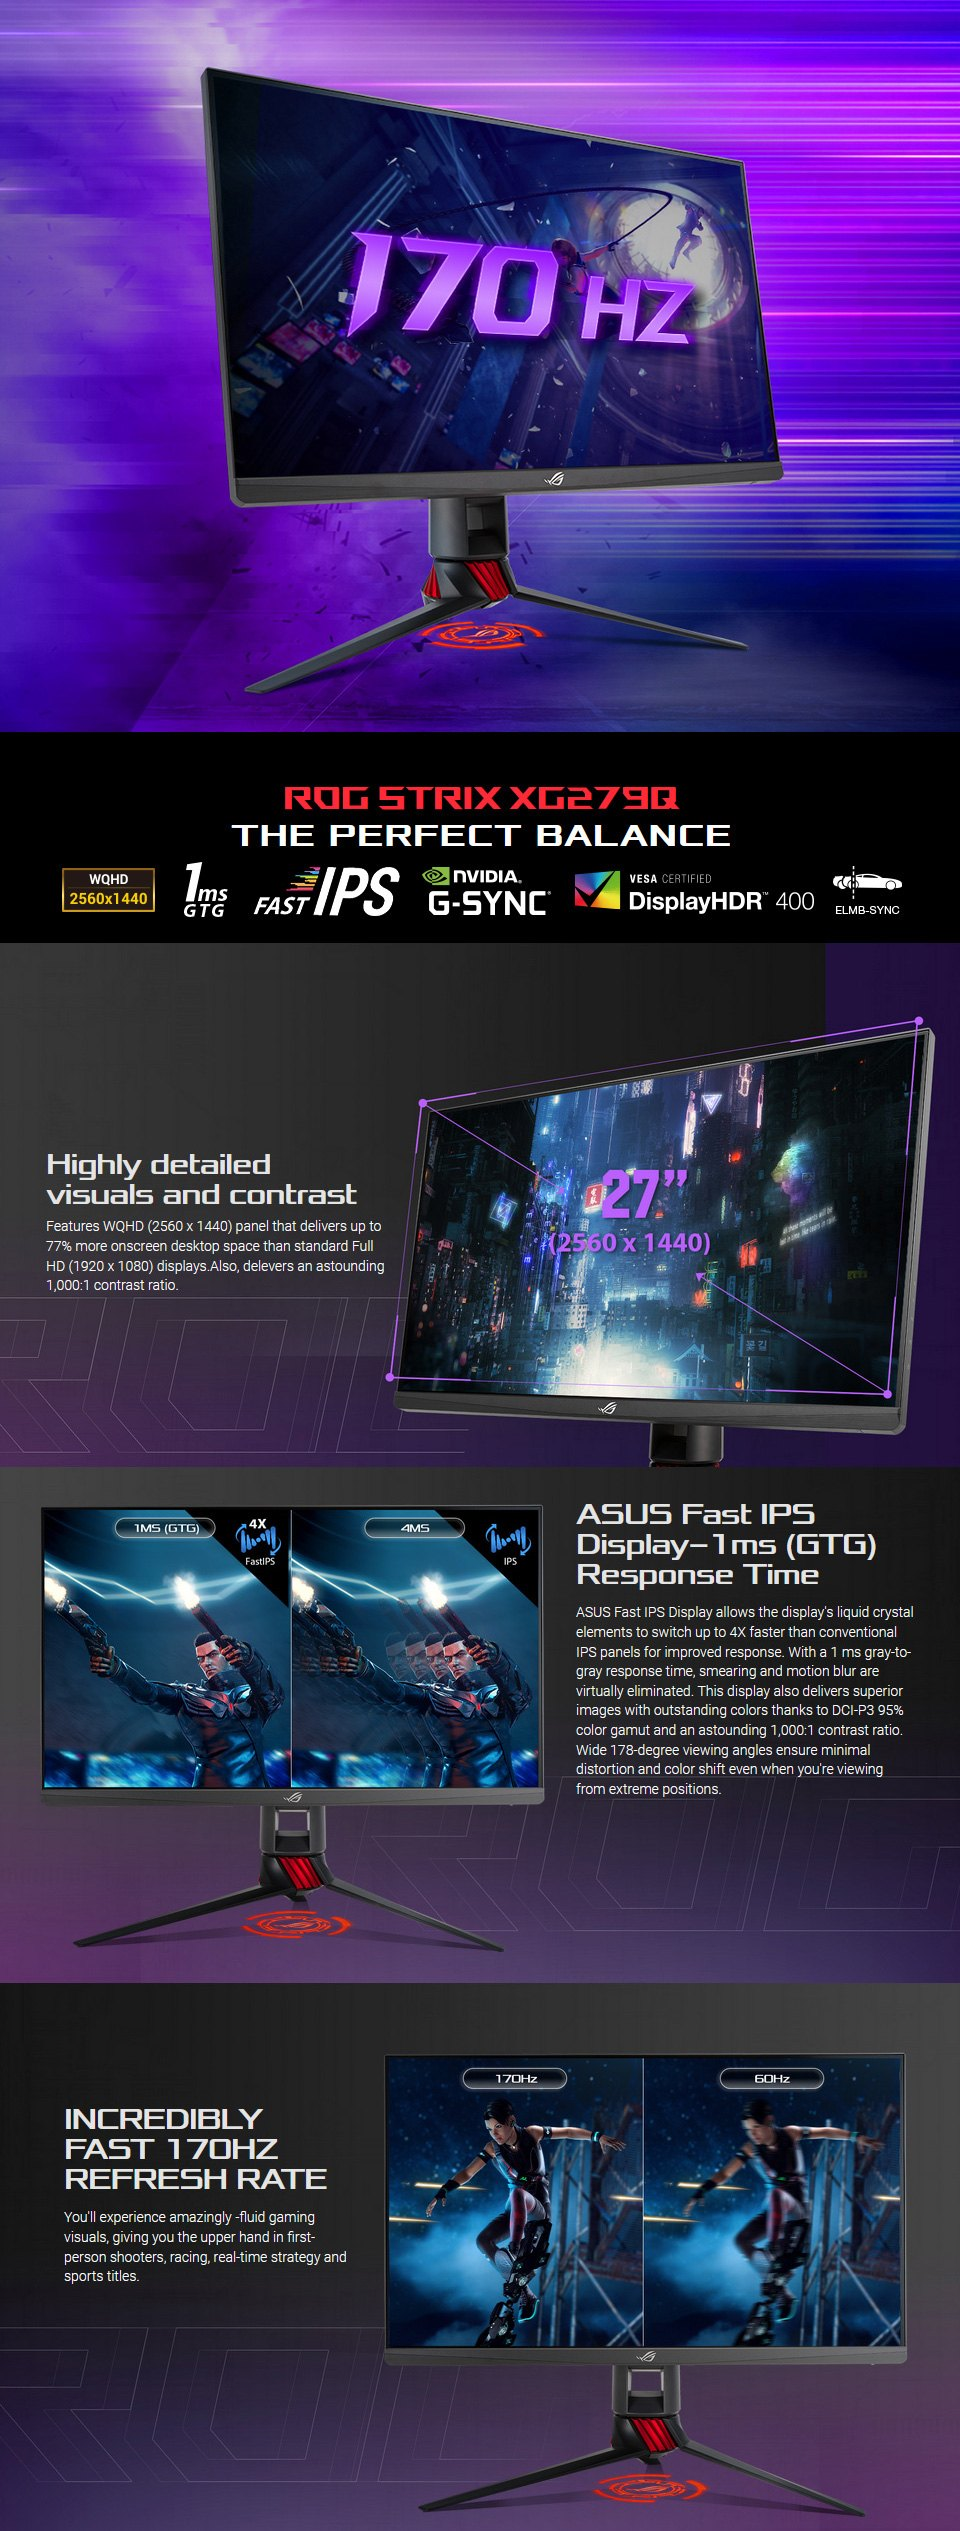 ASUS ROG XG279Q QHD 144hz+ FreeSync HDR 27in Monitor features